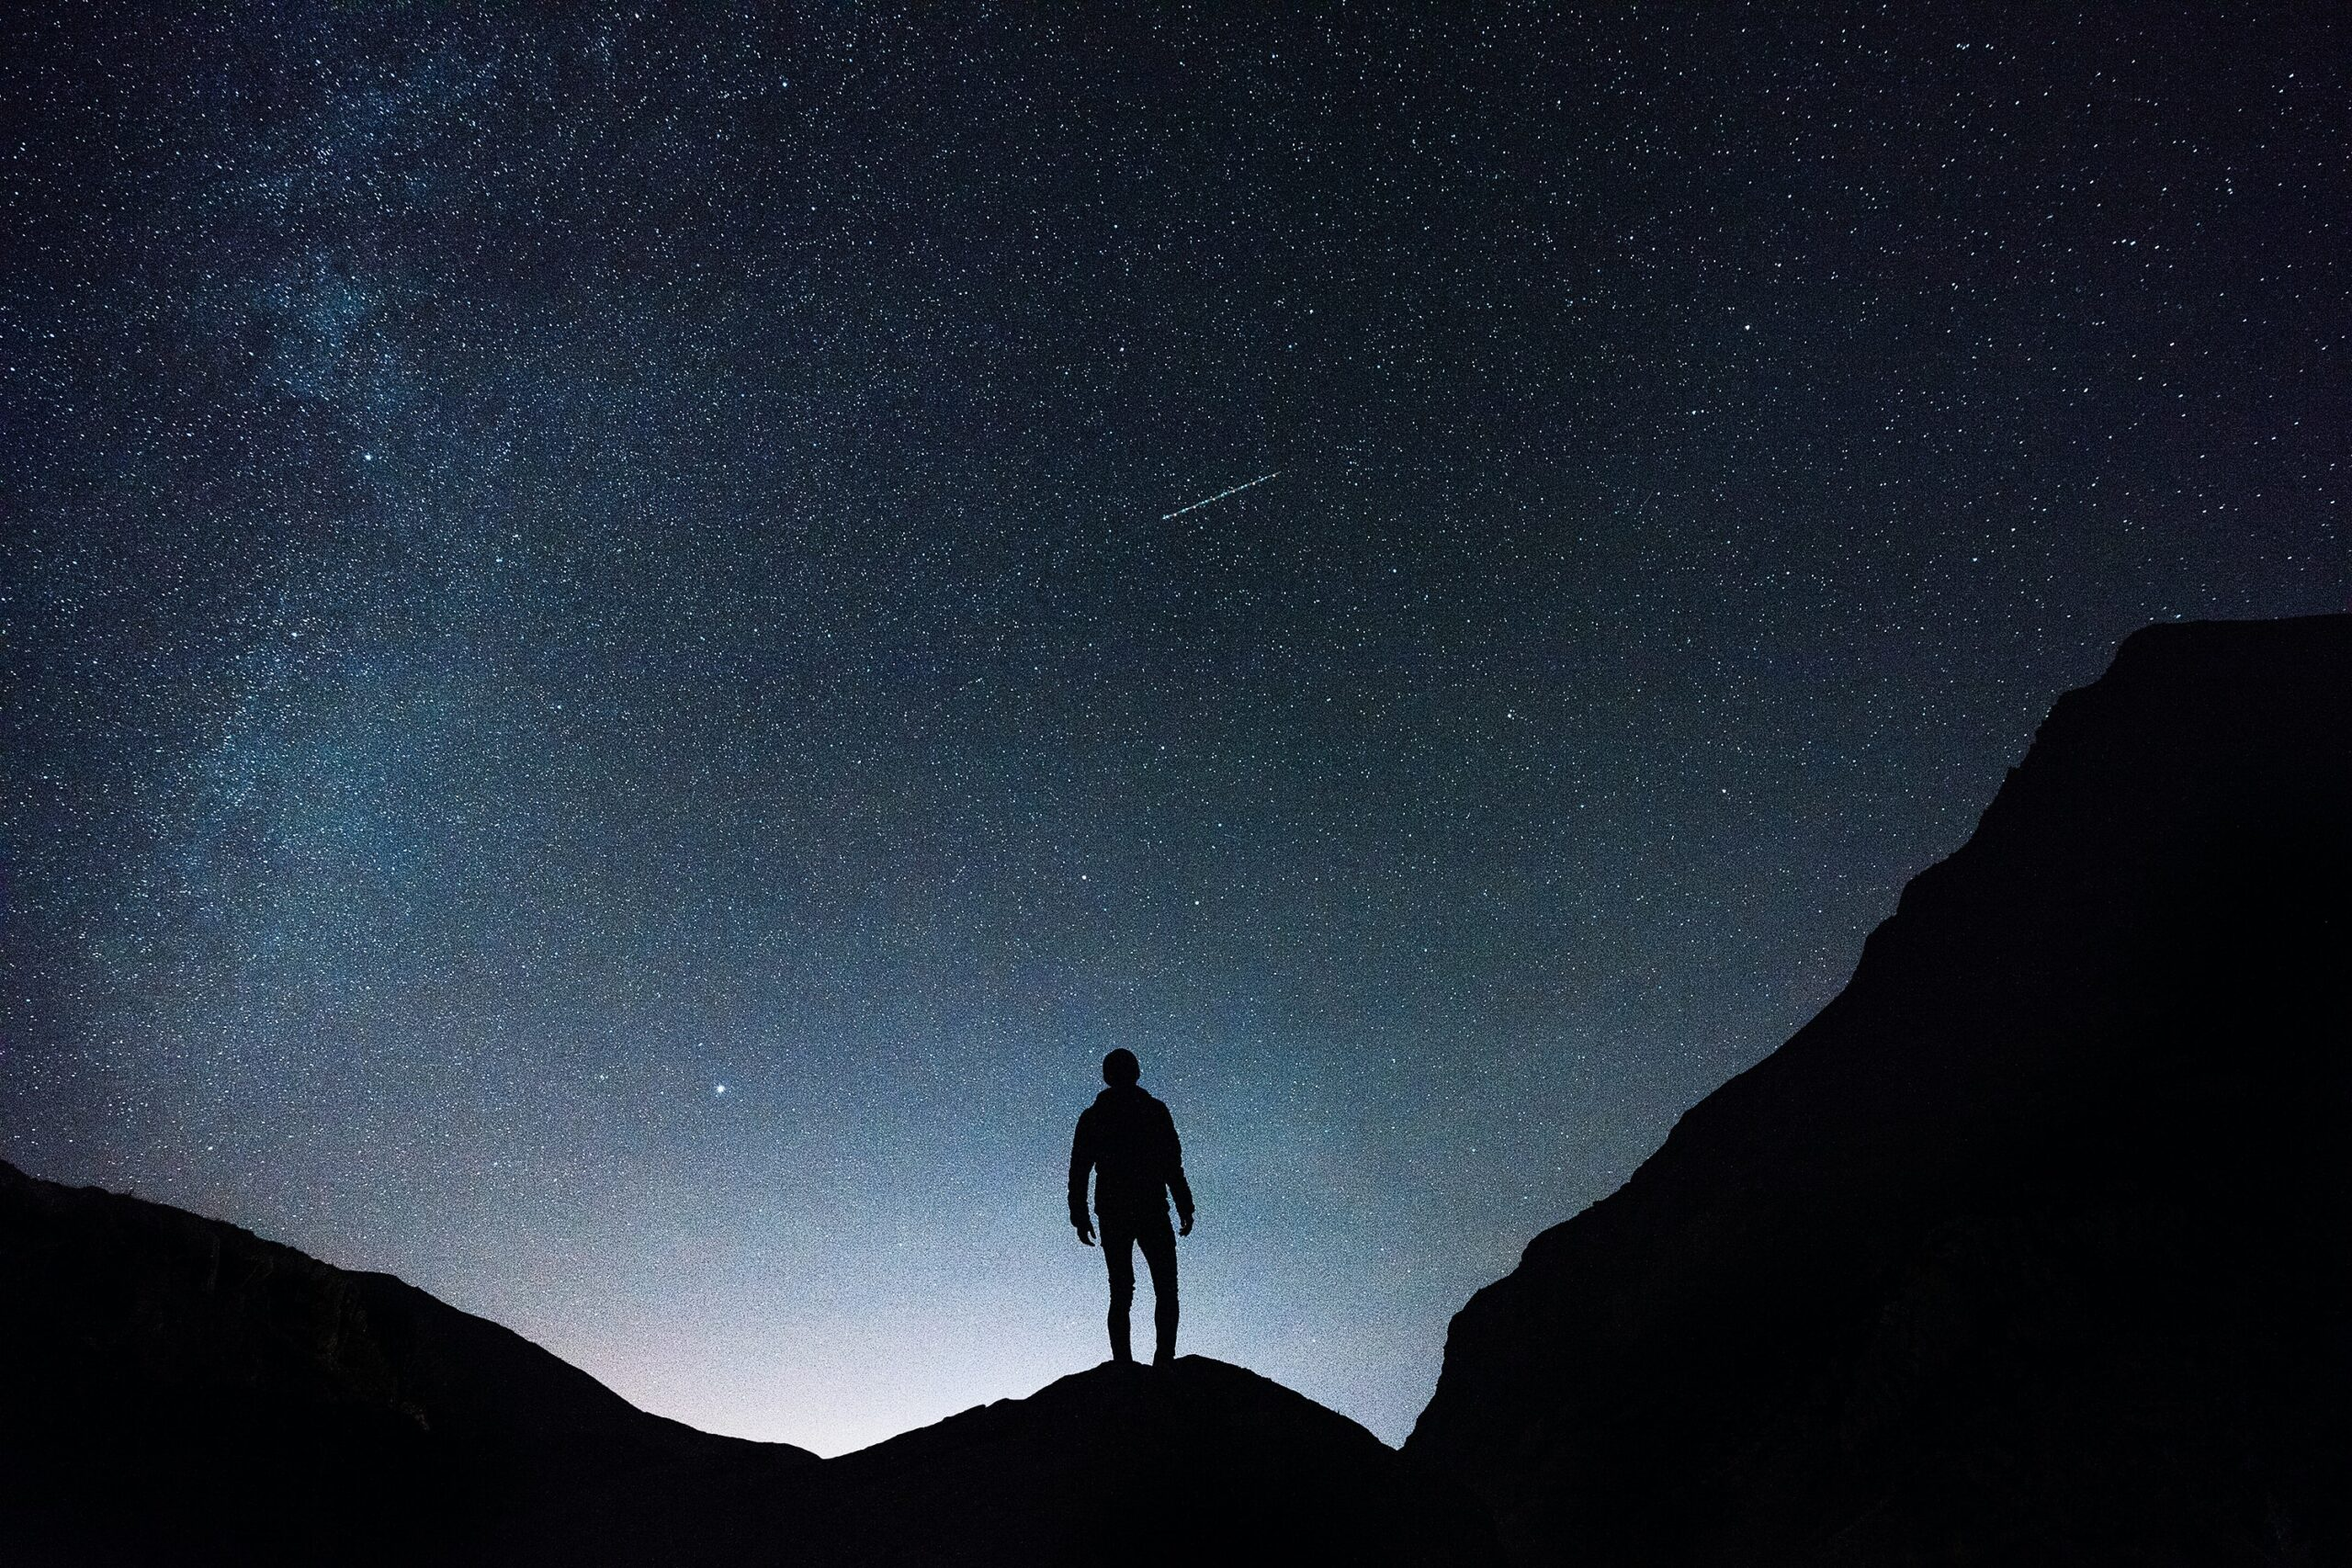 Man stands alone, watching a shooting star.